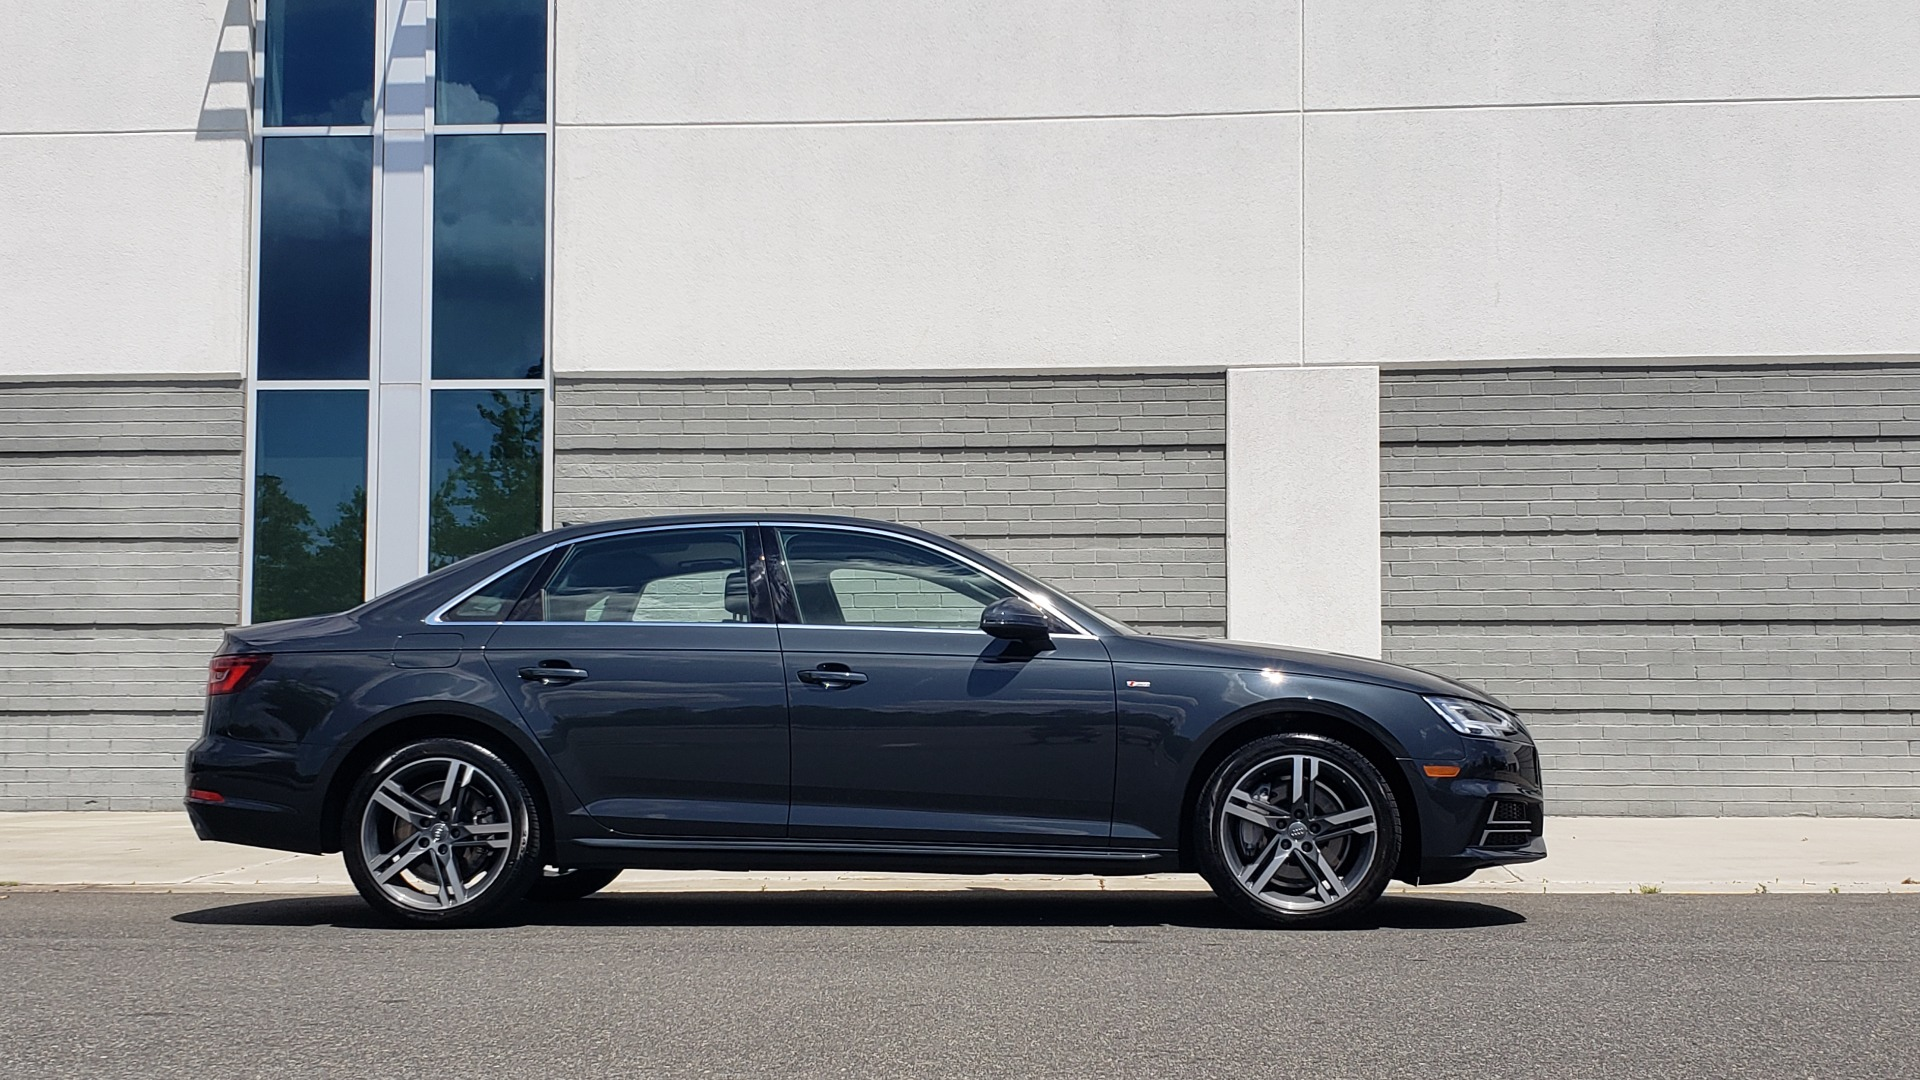 Used 2018 Audi A4 TECH PREMIUM PLUS / NAV / B&O SND / SUNROOF / CLD WTHR / REARVIEW for sale $28,595 at Formula Imports in Charlotte NC 28227 9